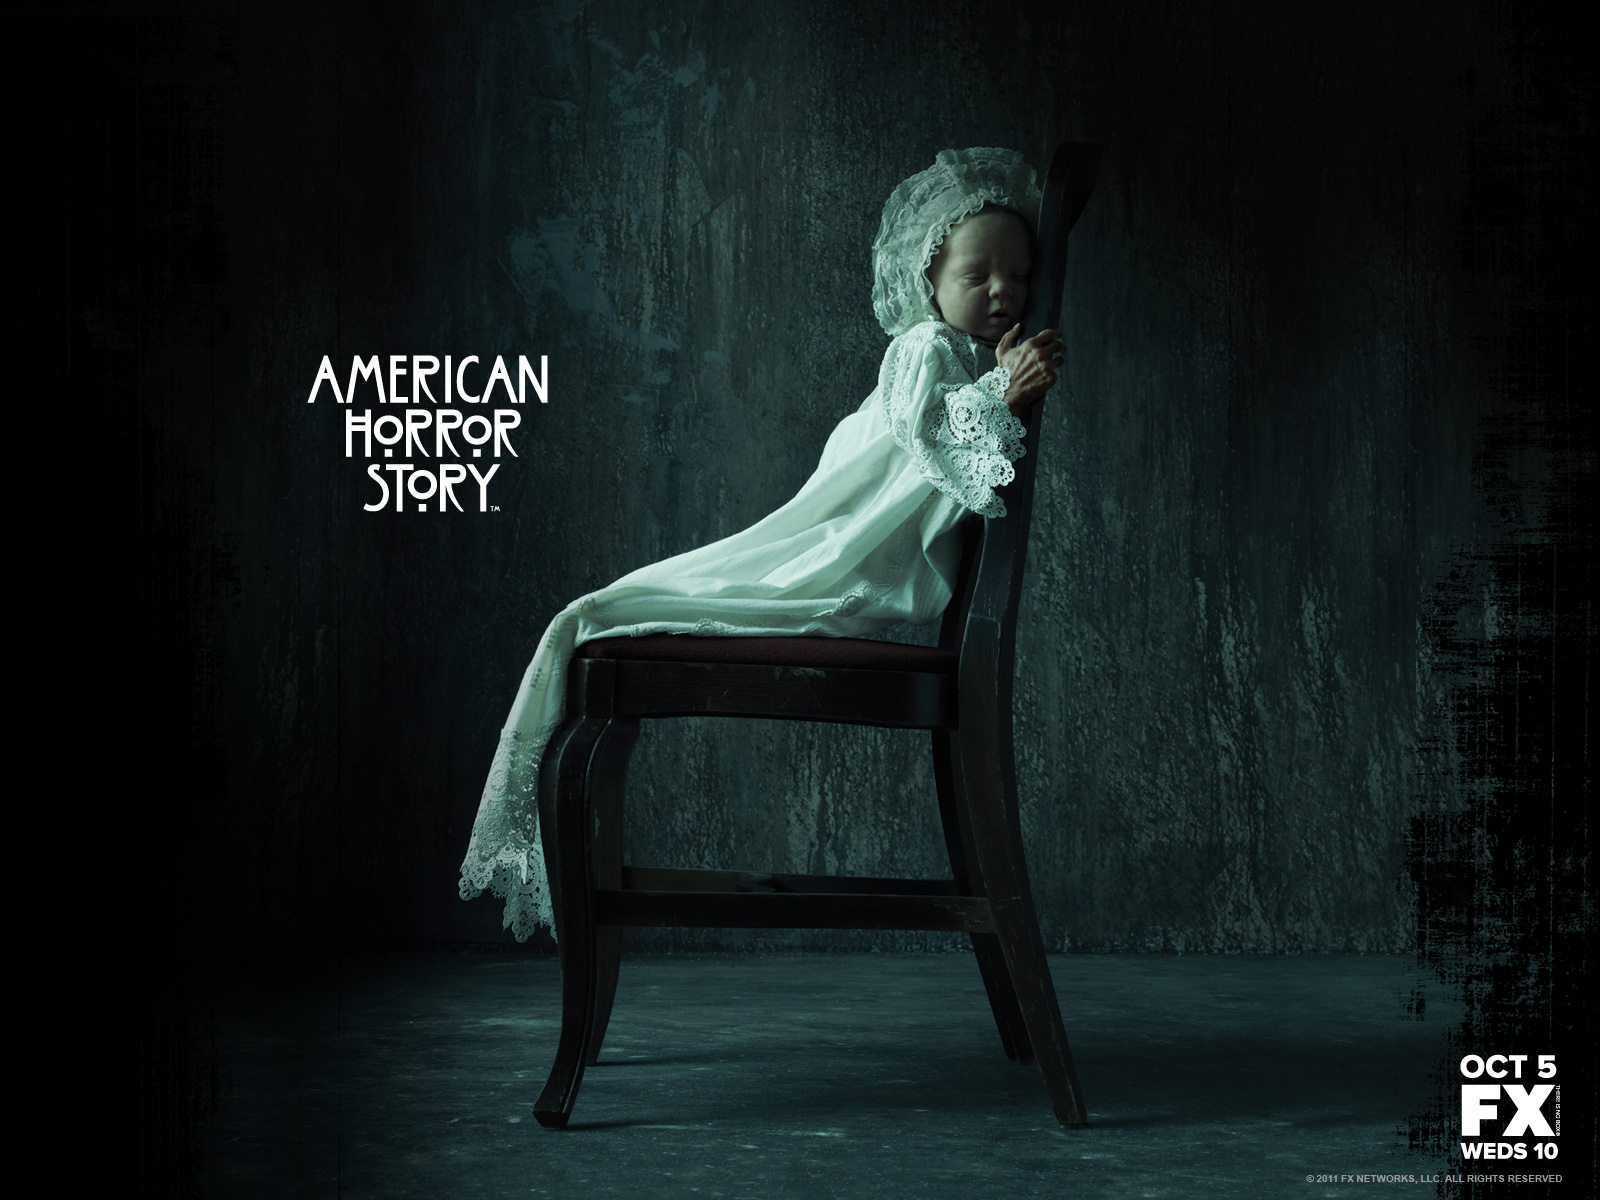 144 american horror story hd wallpapers background images wallpaper abyss - American horror story wallpaper ...